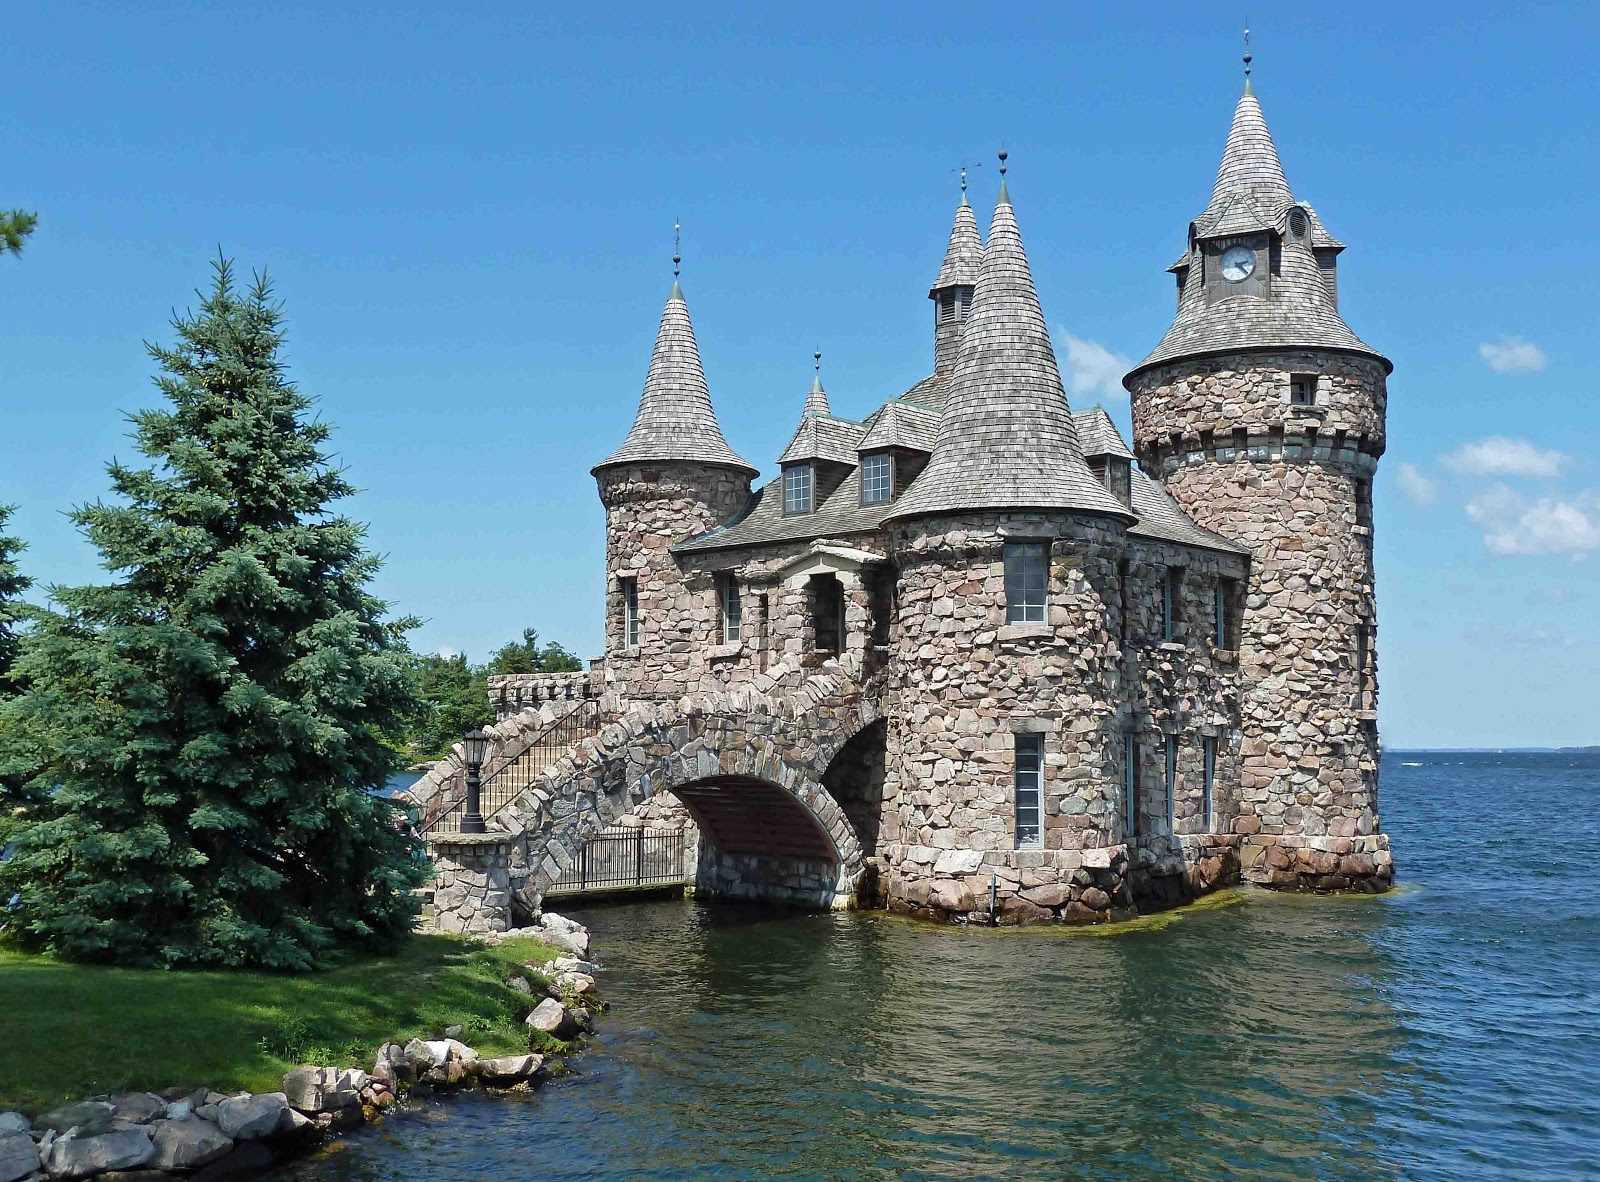 Last dance boldt castle heart island 1000 islands for Castle style homes